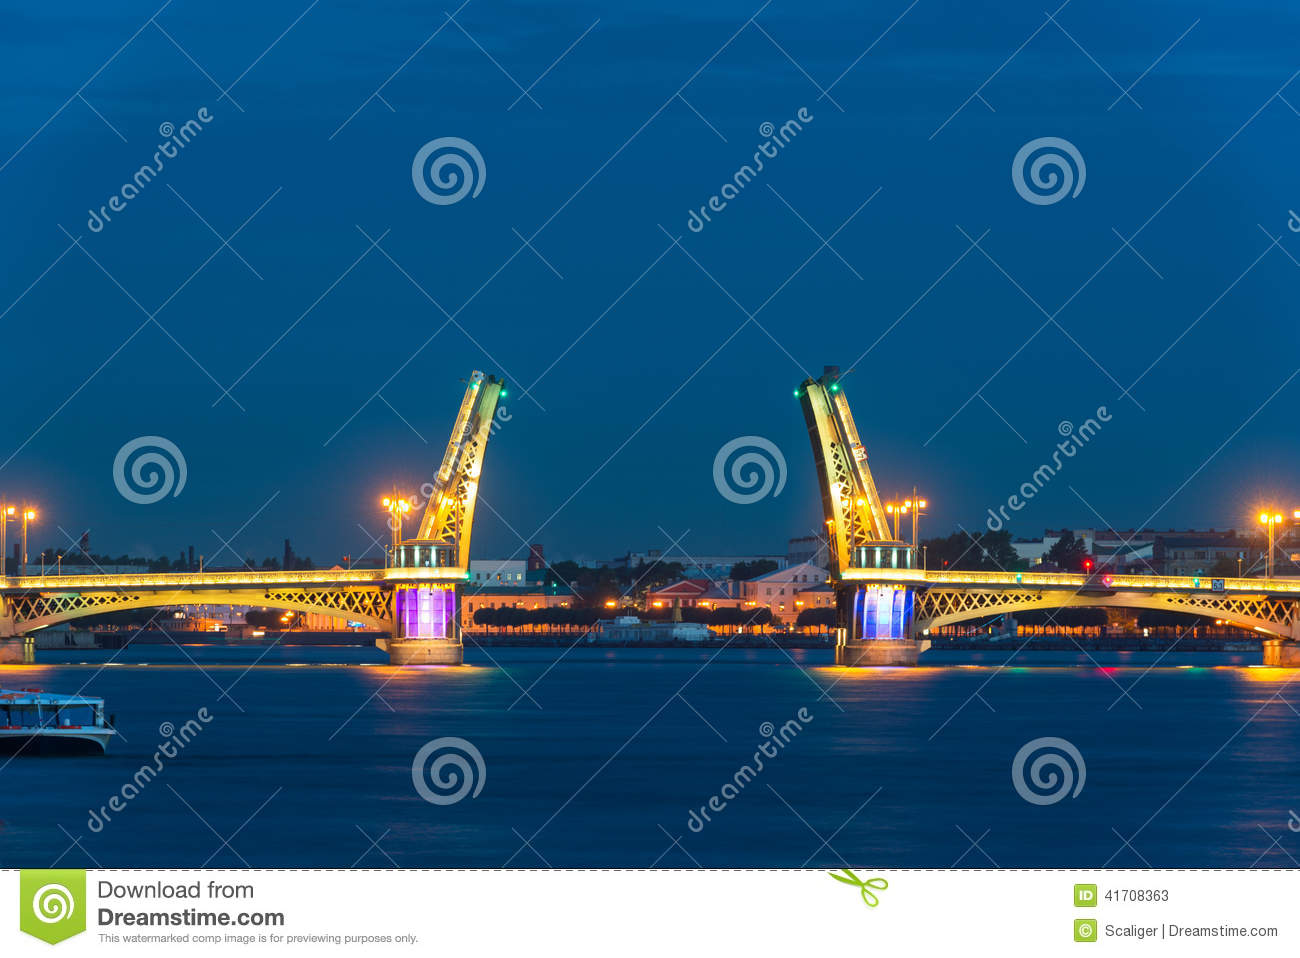 Blagoveshchensky Bridge during the White Nights, St Petersburg